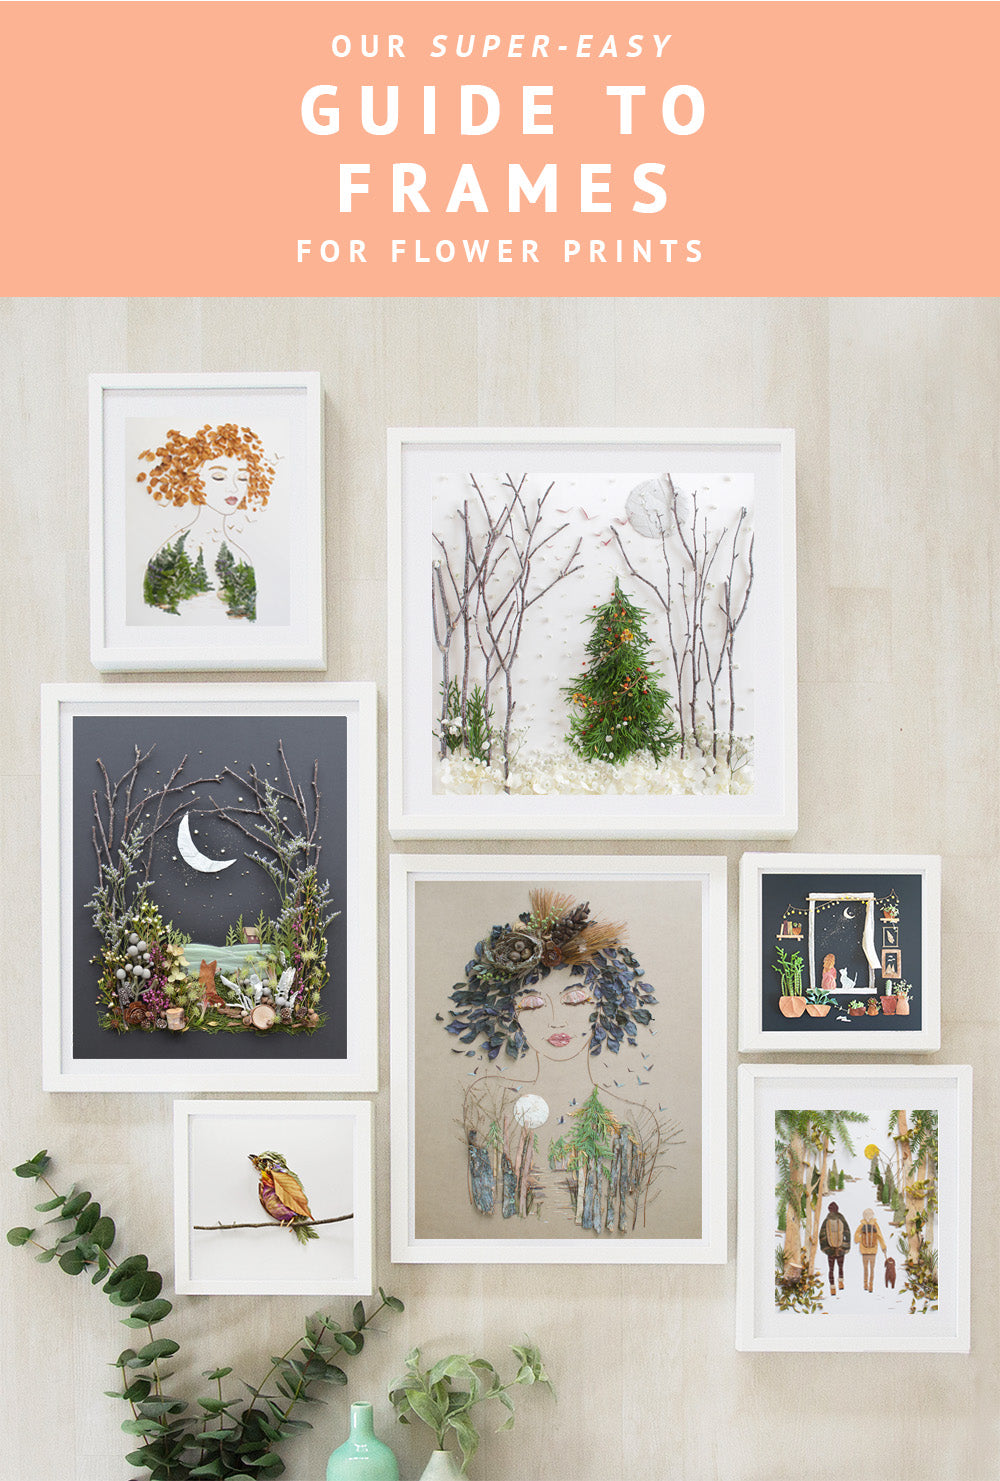 Sister Golden | Quick Guide to Framing Flower Prints